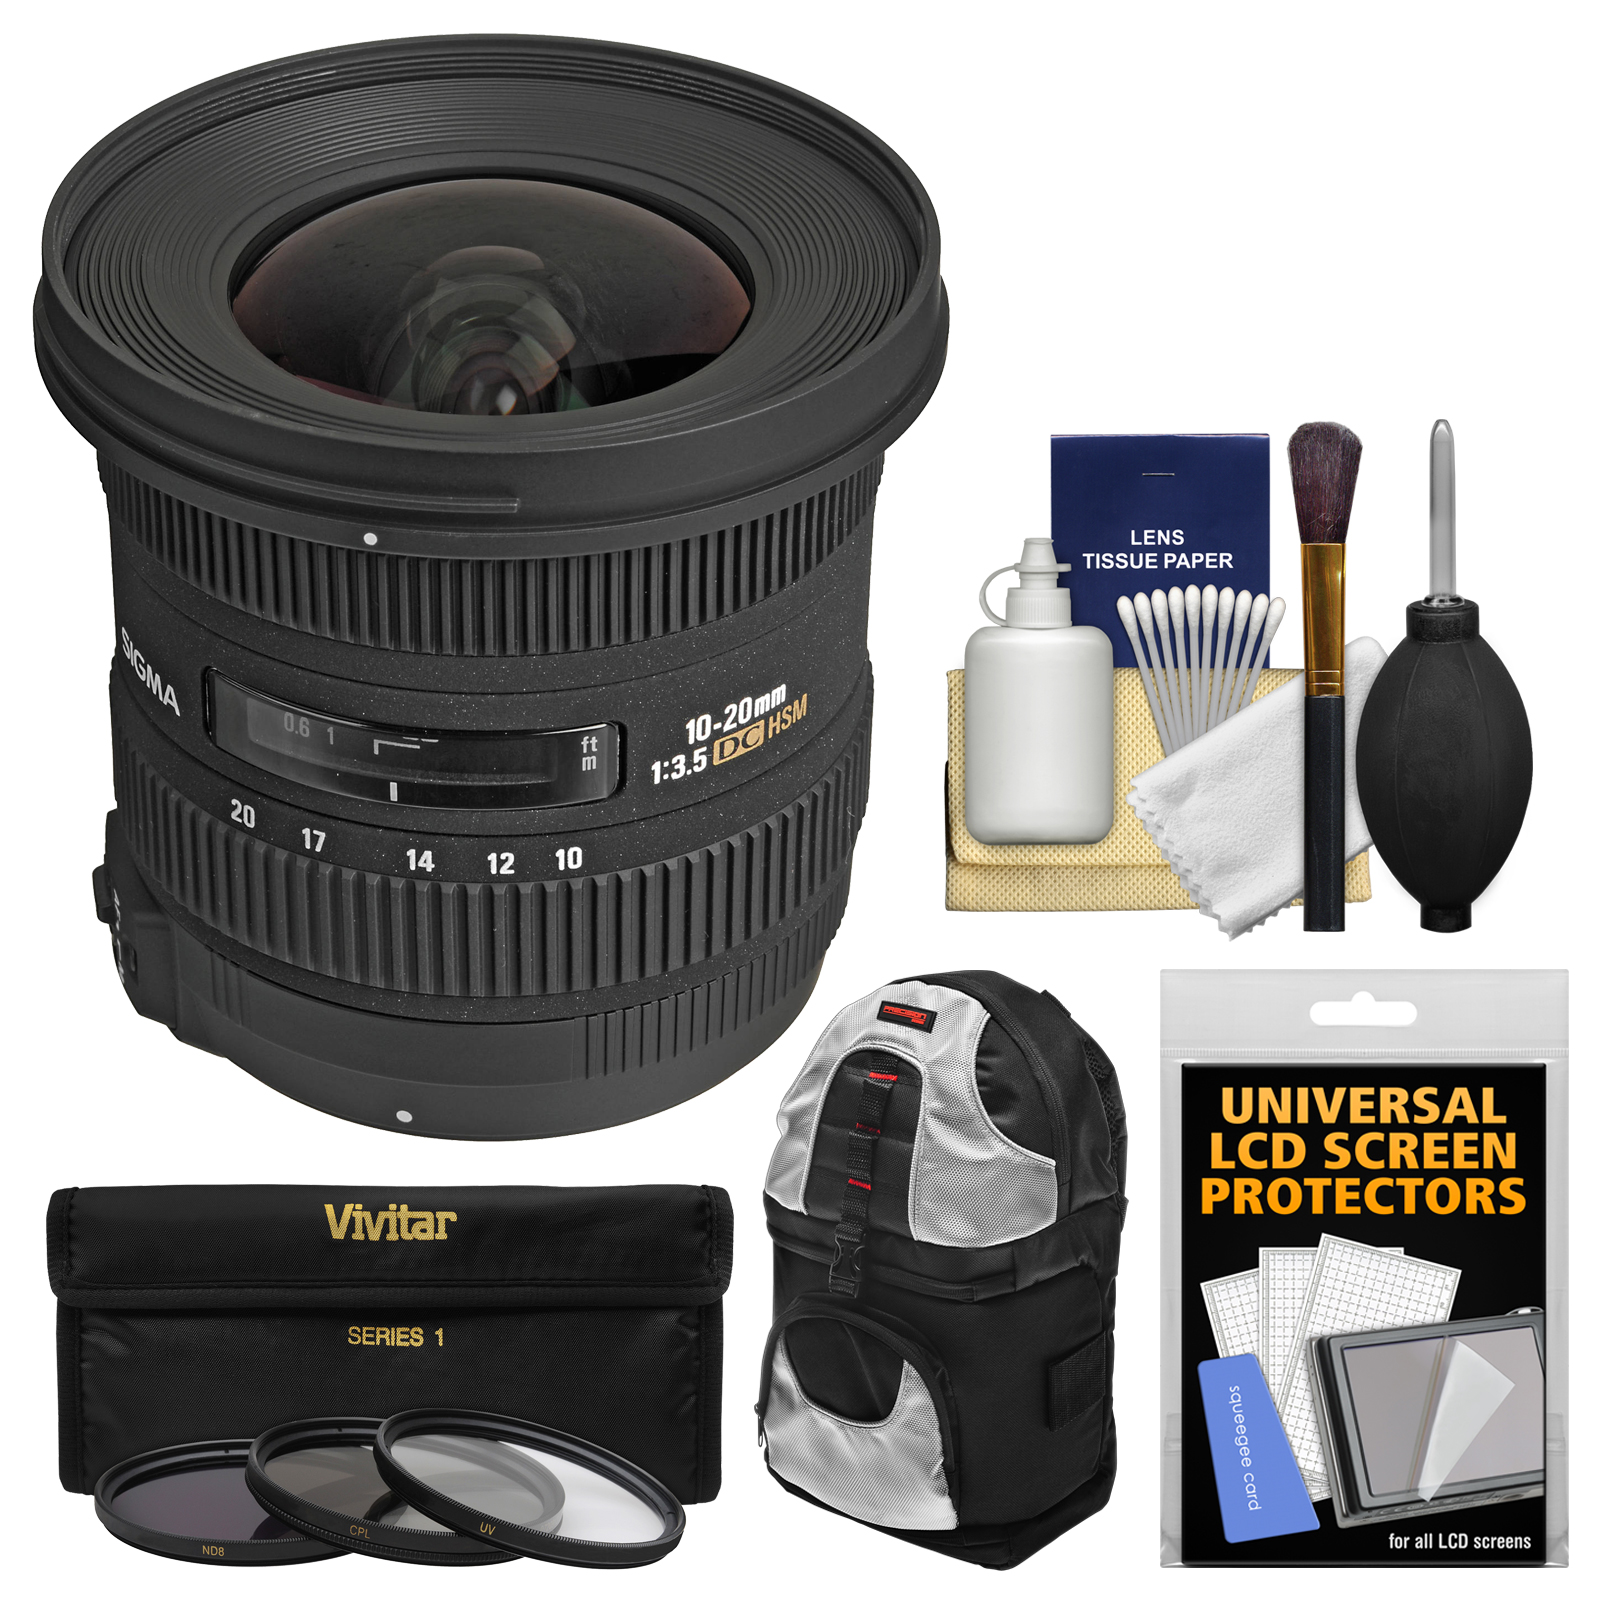 Sigma 10-20mm f/3.5 EX DC HSM Zoom Lens with Case   3 Kit for Nikon D3200, D3300, D5300, D5500, D7100, D7200, D610, D750, D810, D4s DSLR Cameras